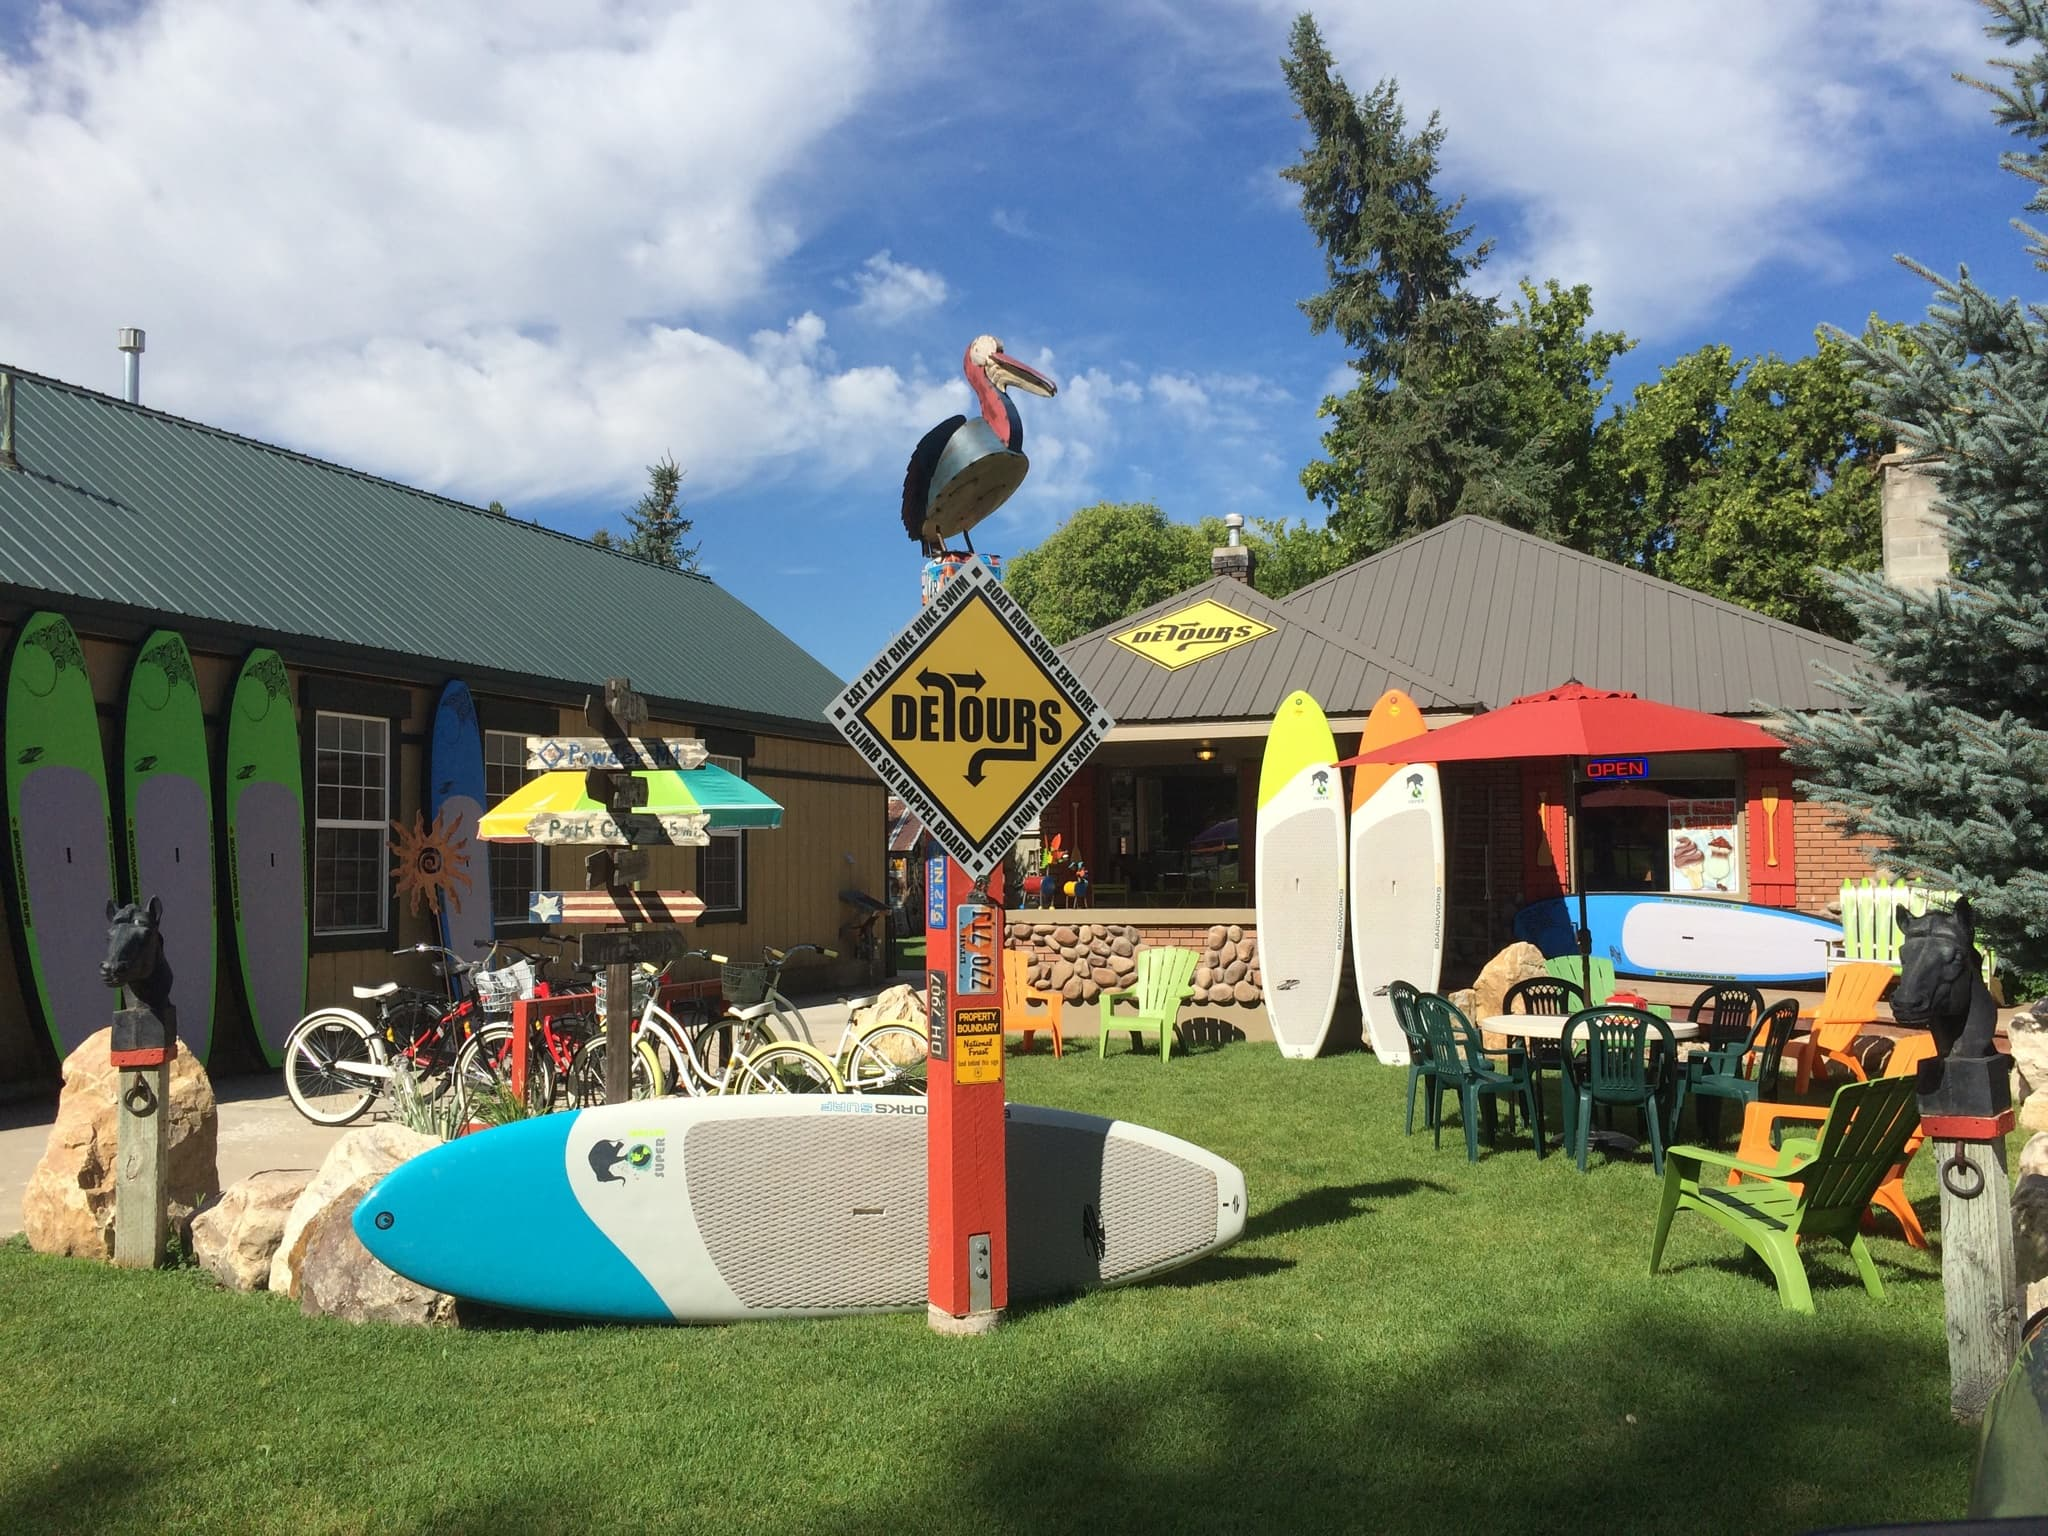 Detours Utah - a Stand-up Paddle Boarding rental shop in Huntsville near the Causey Reservoir